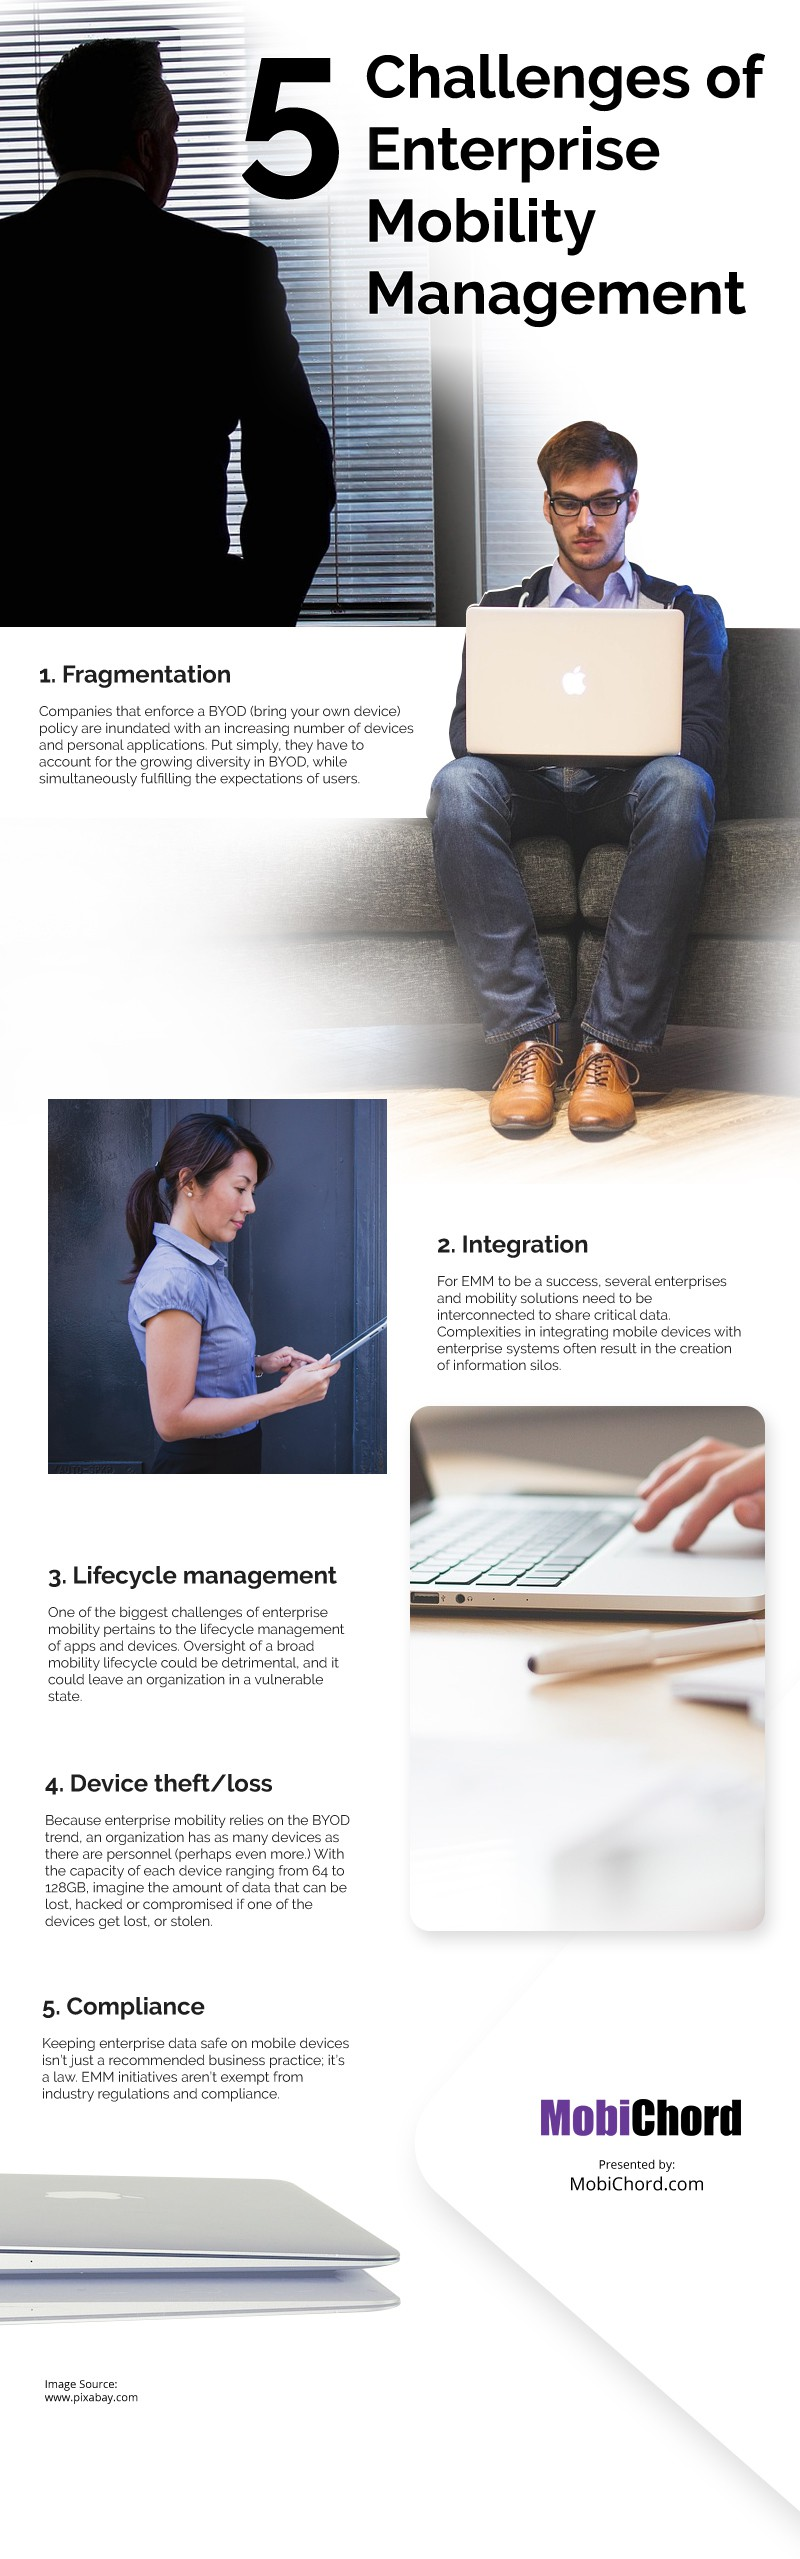 5 Challenges of Enterprise Mobility Management Infographic